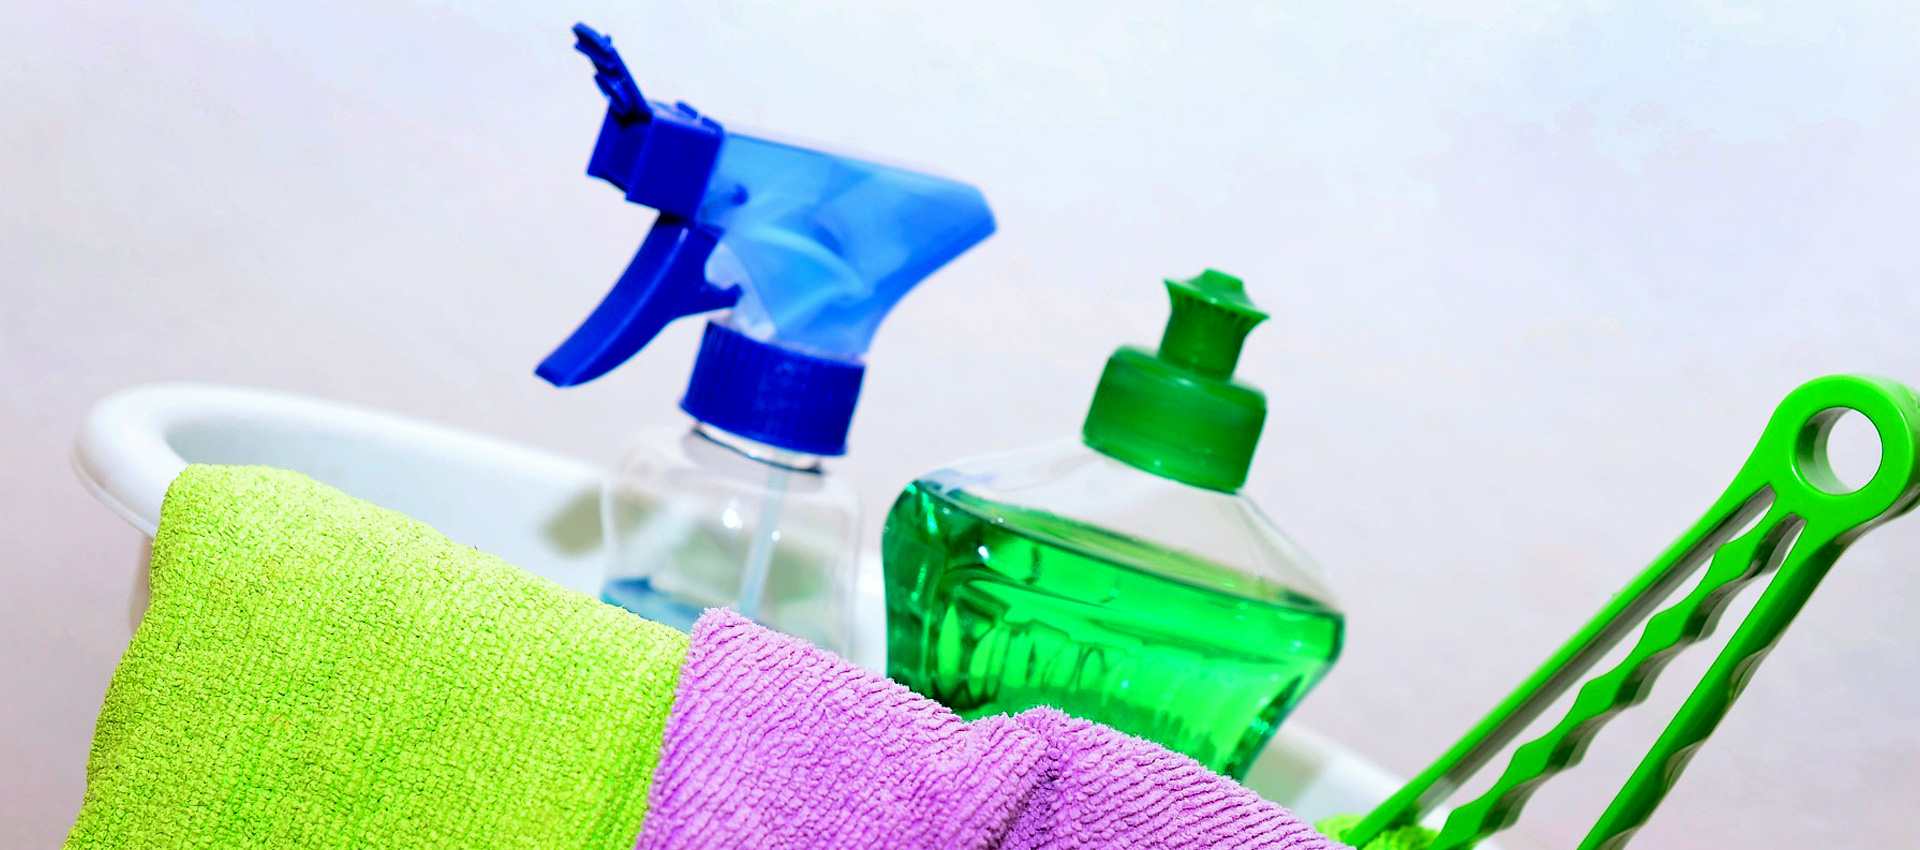 cleaning-services-img-1